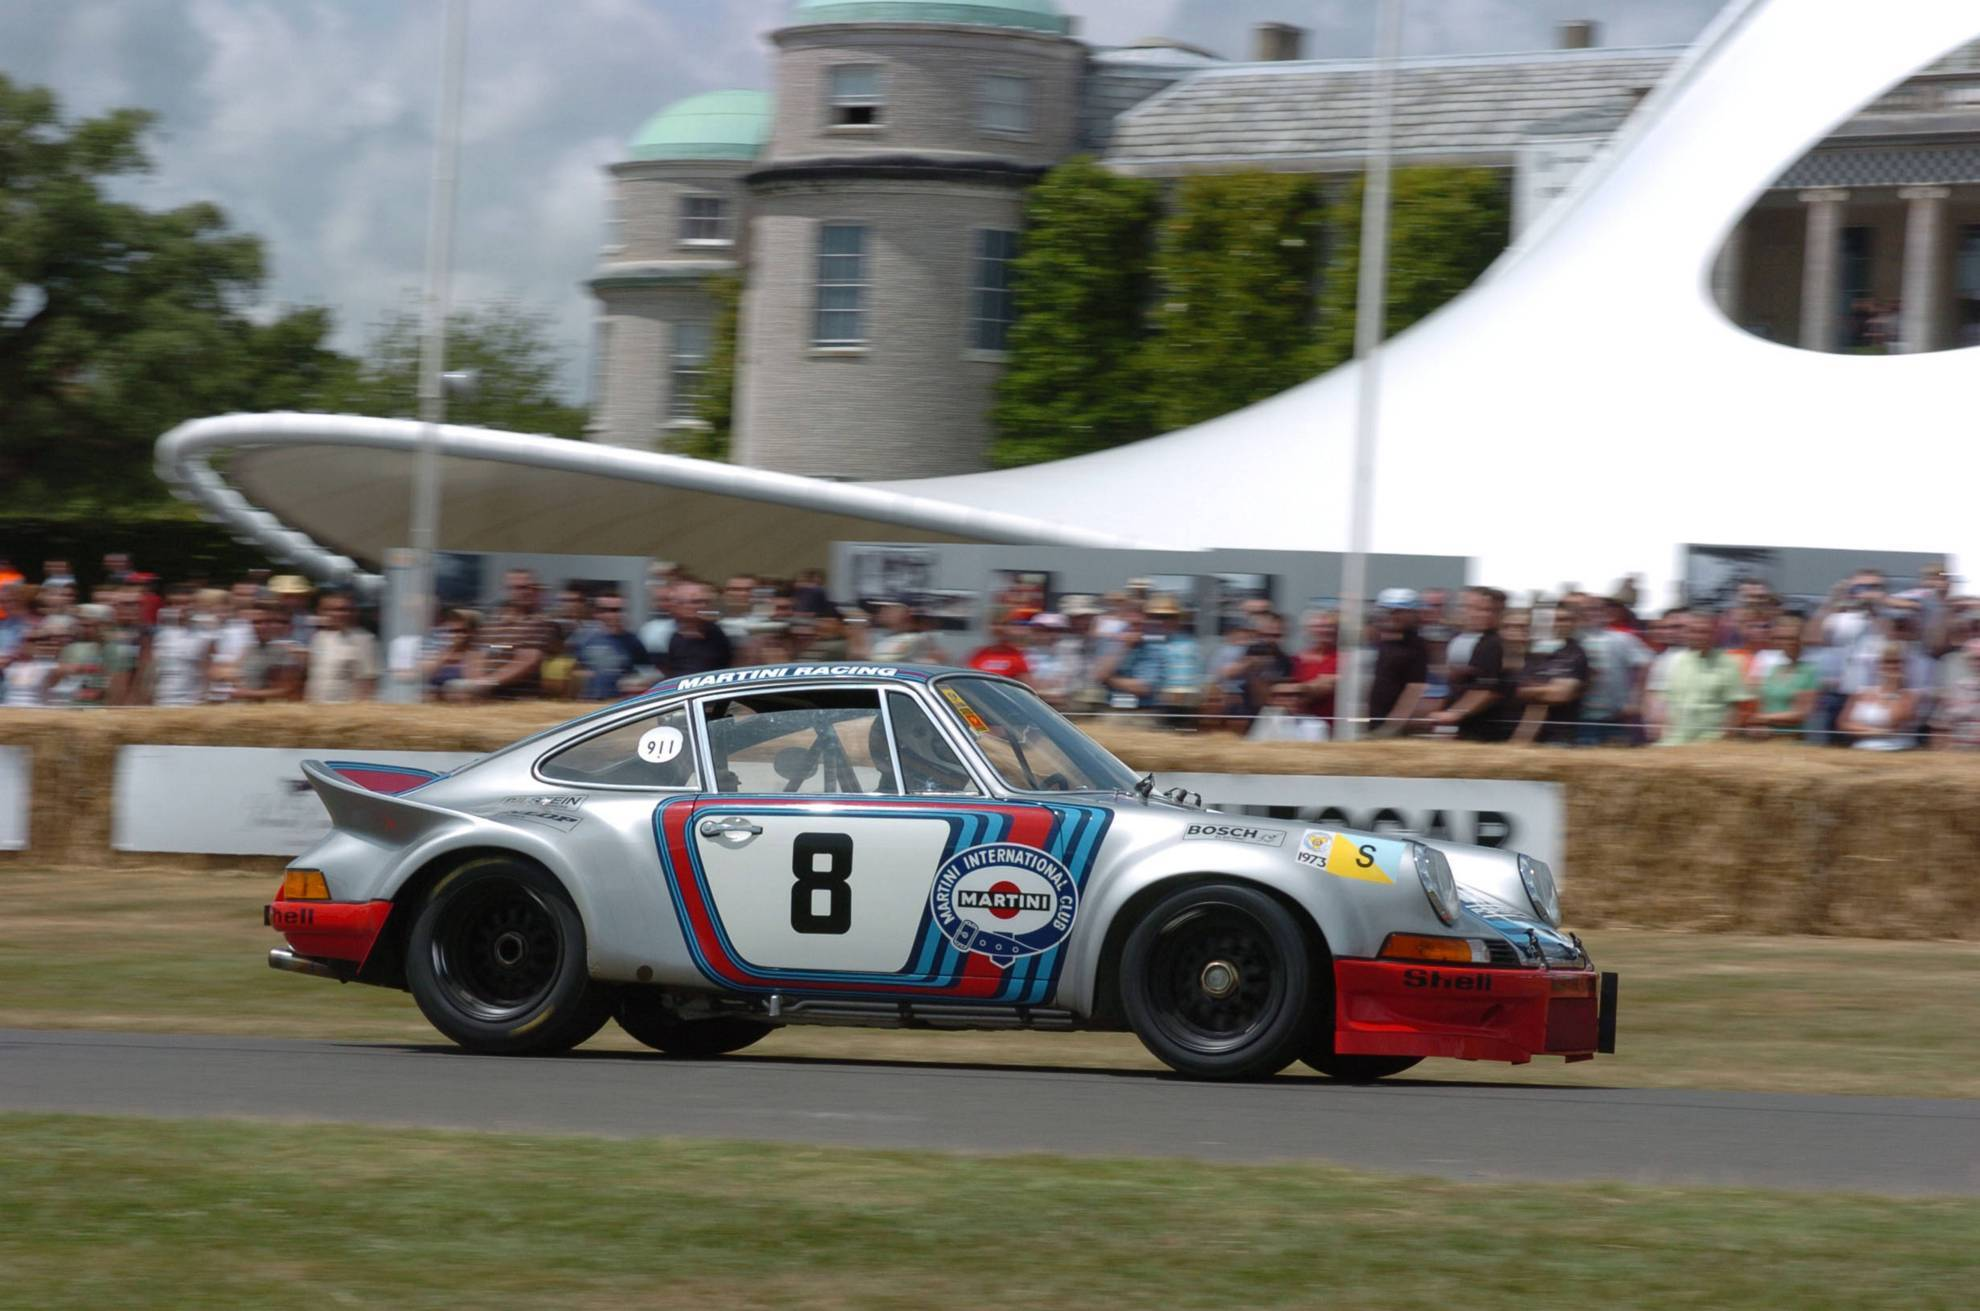 GOODWOOD HILL CLIMB TO FEATURE IN GRAN TURISMO TO DEBUT AT THE - Goodwood hardware car show